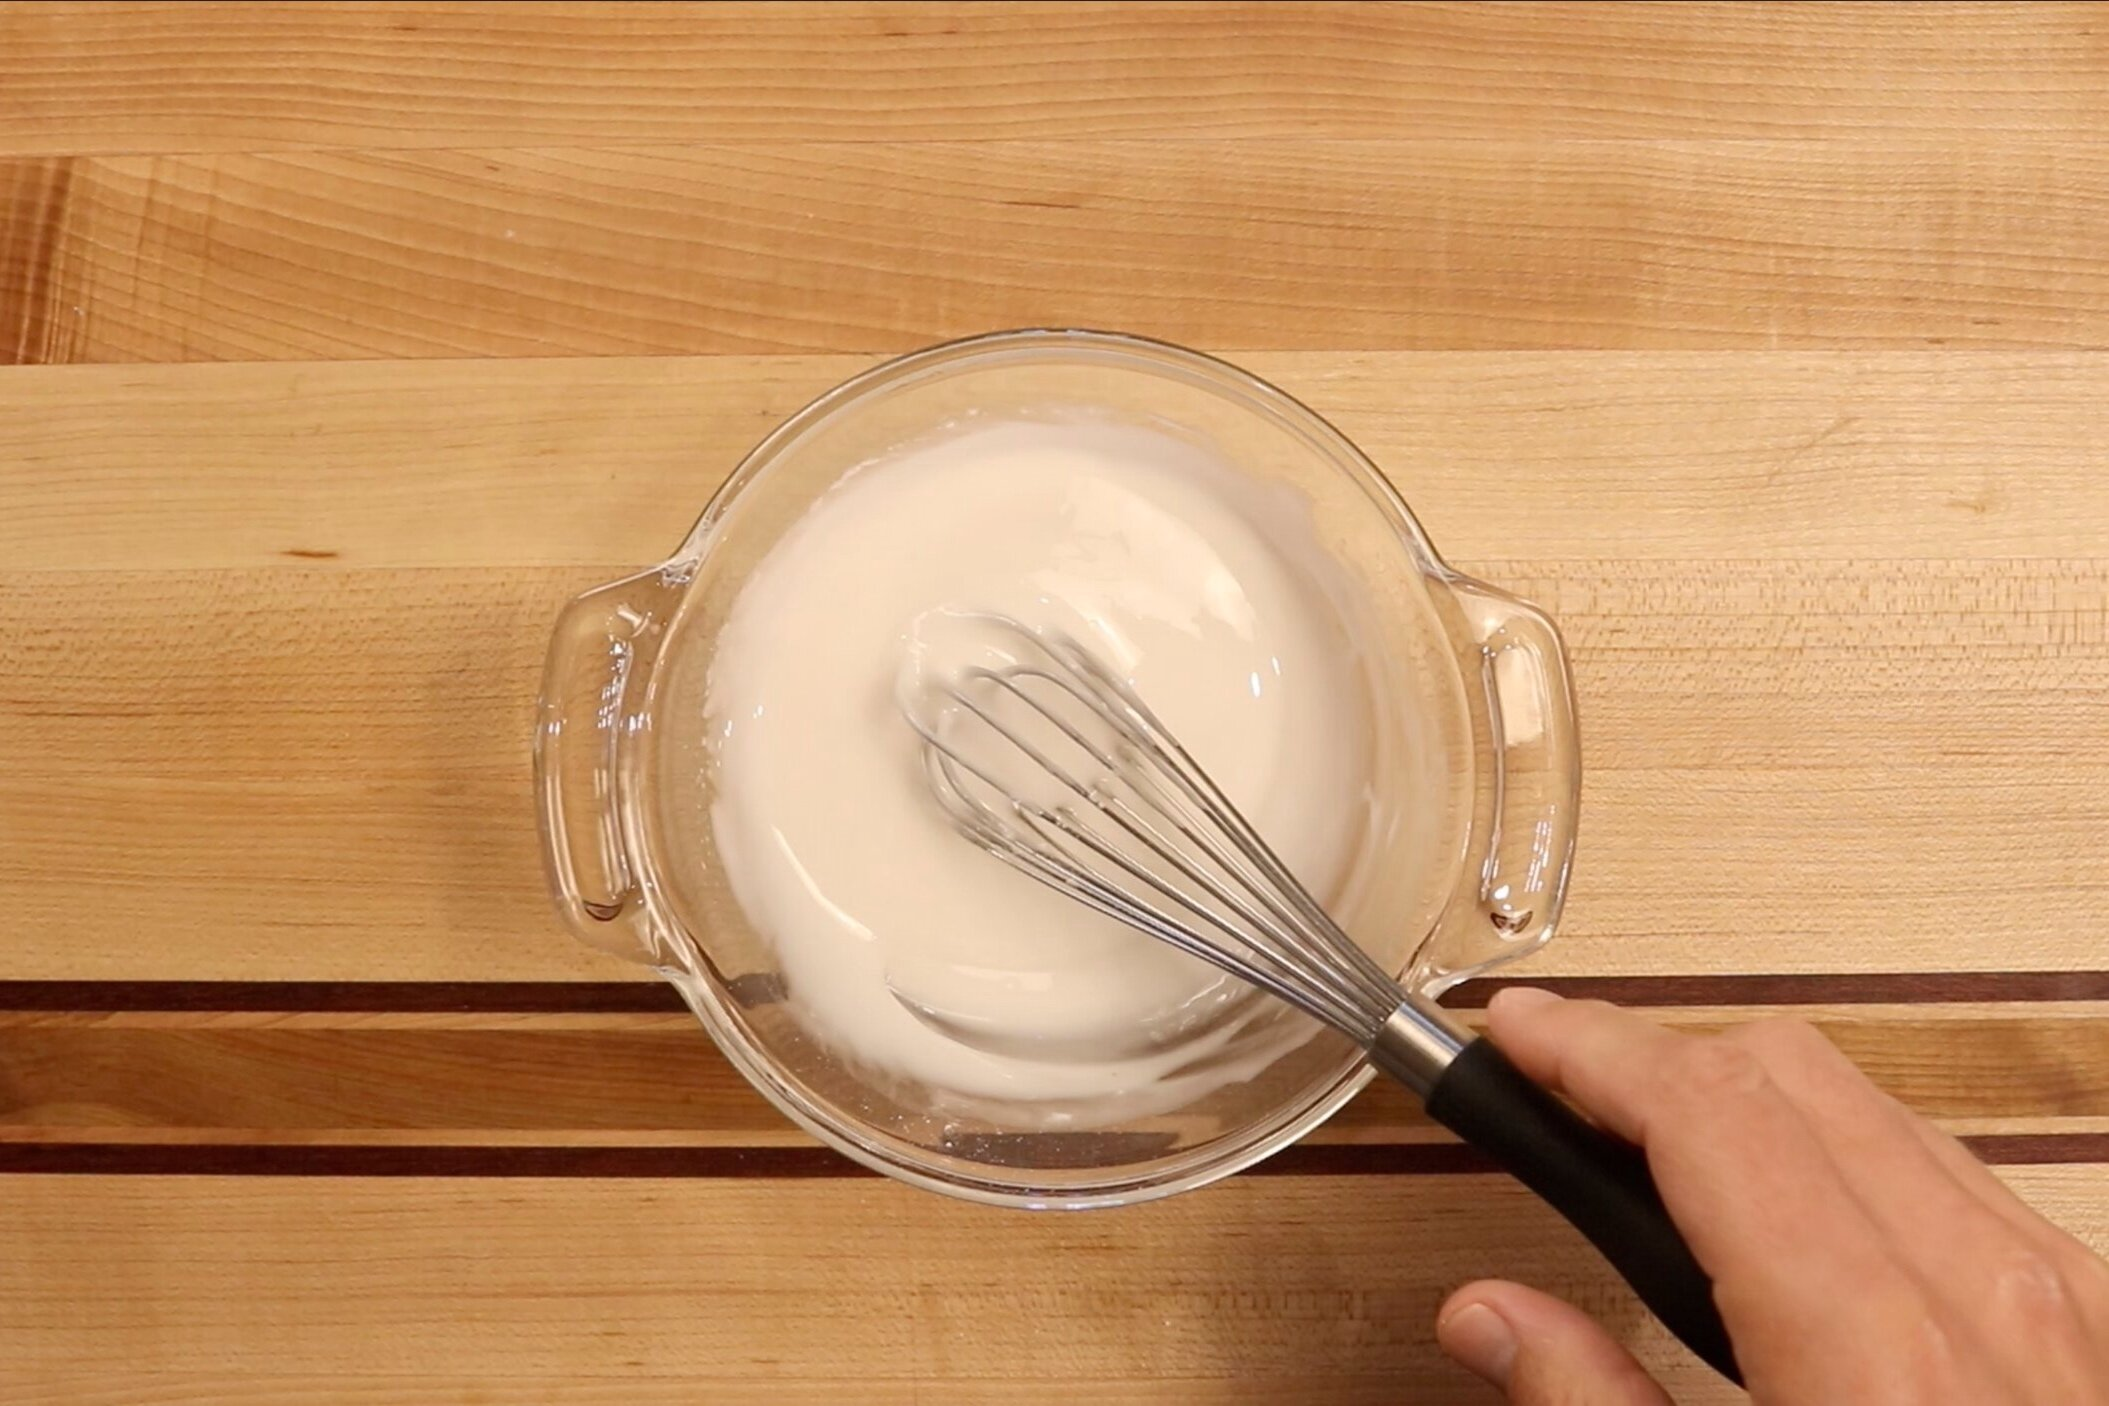 17. Whisk together until glaze reaches a honey-like consistency adding more water if necessary. -